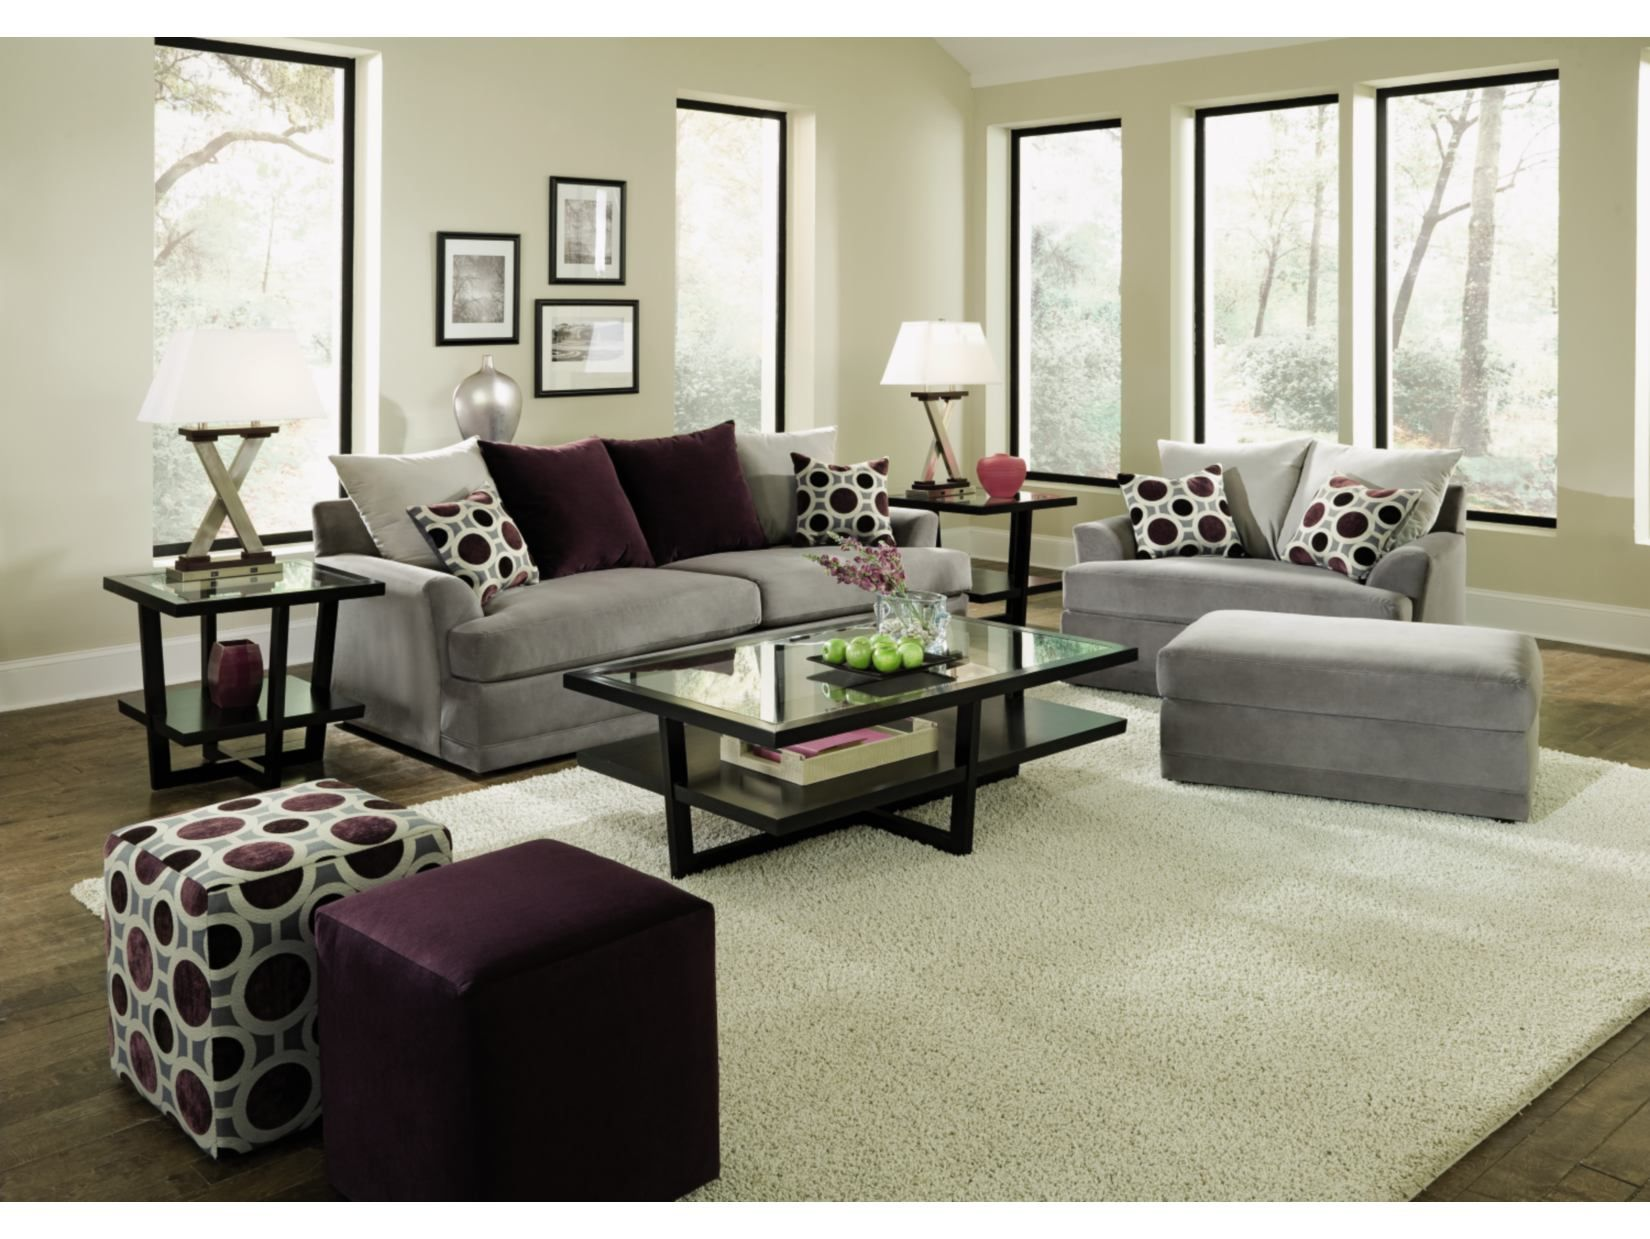 radiance pewter sofa - value city furniture grey sofa and love